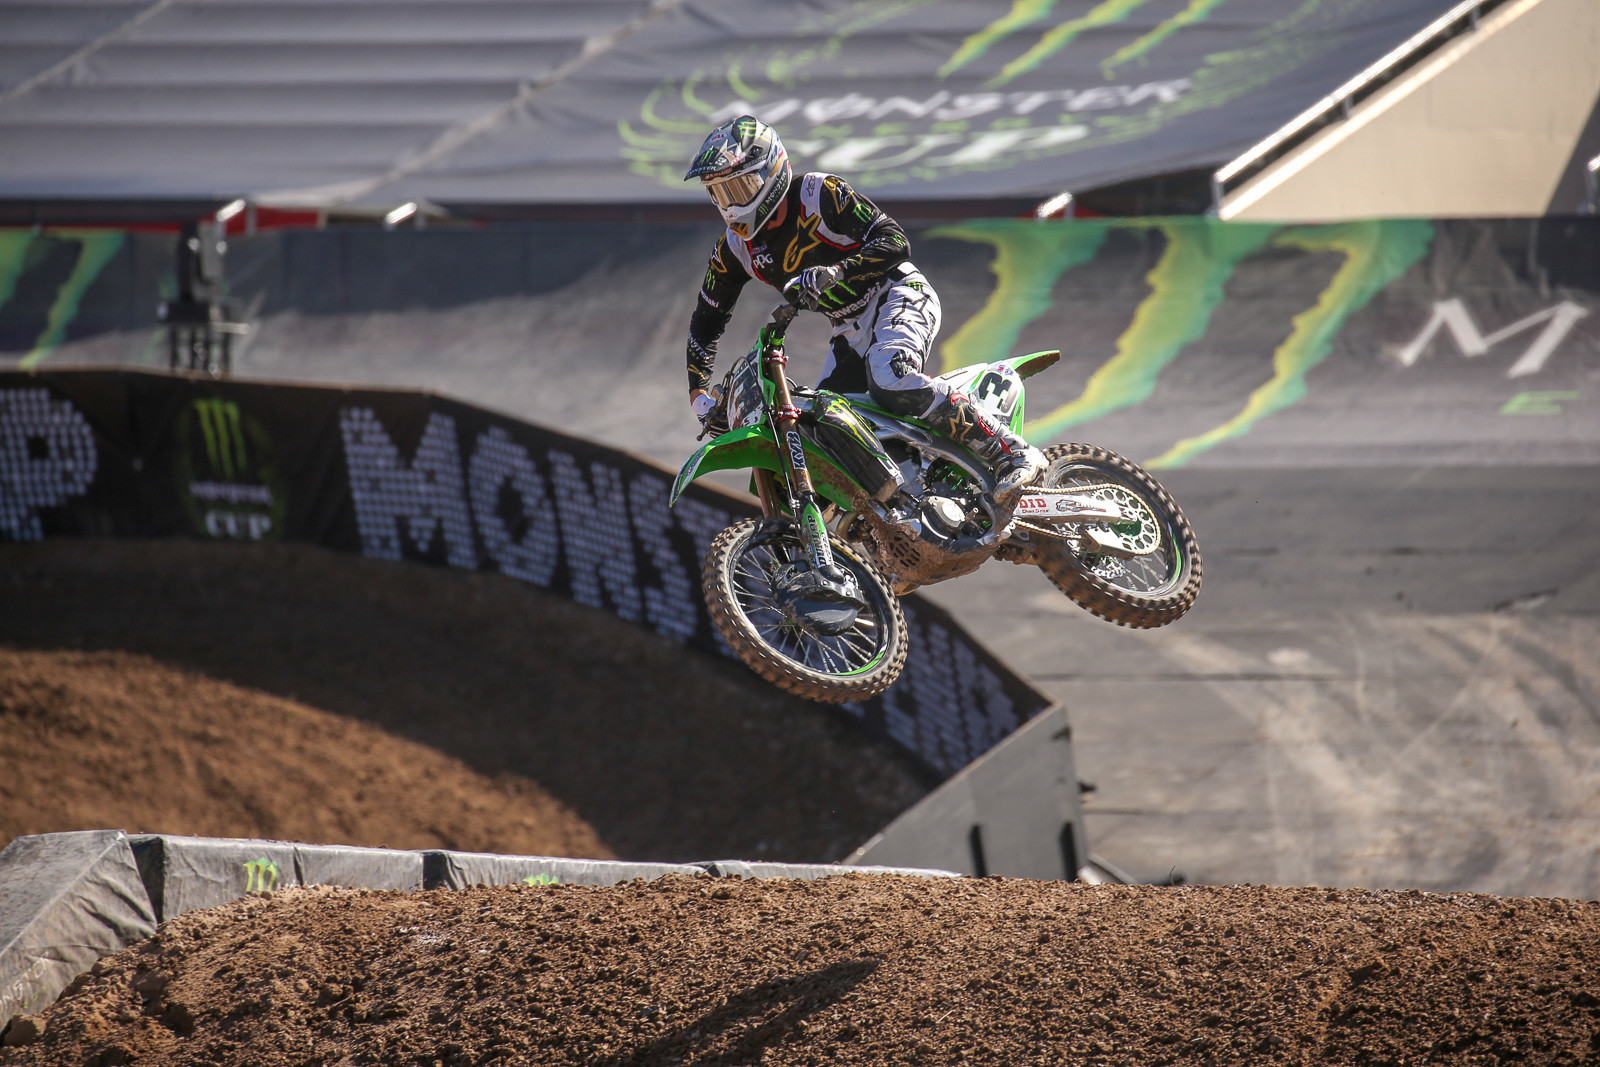 We dig the custom setups that brands bring to the Monster Energy Cup.